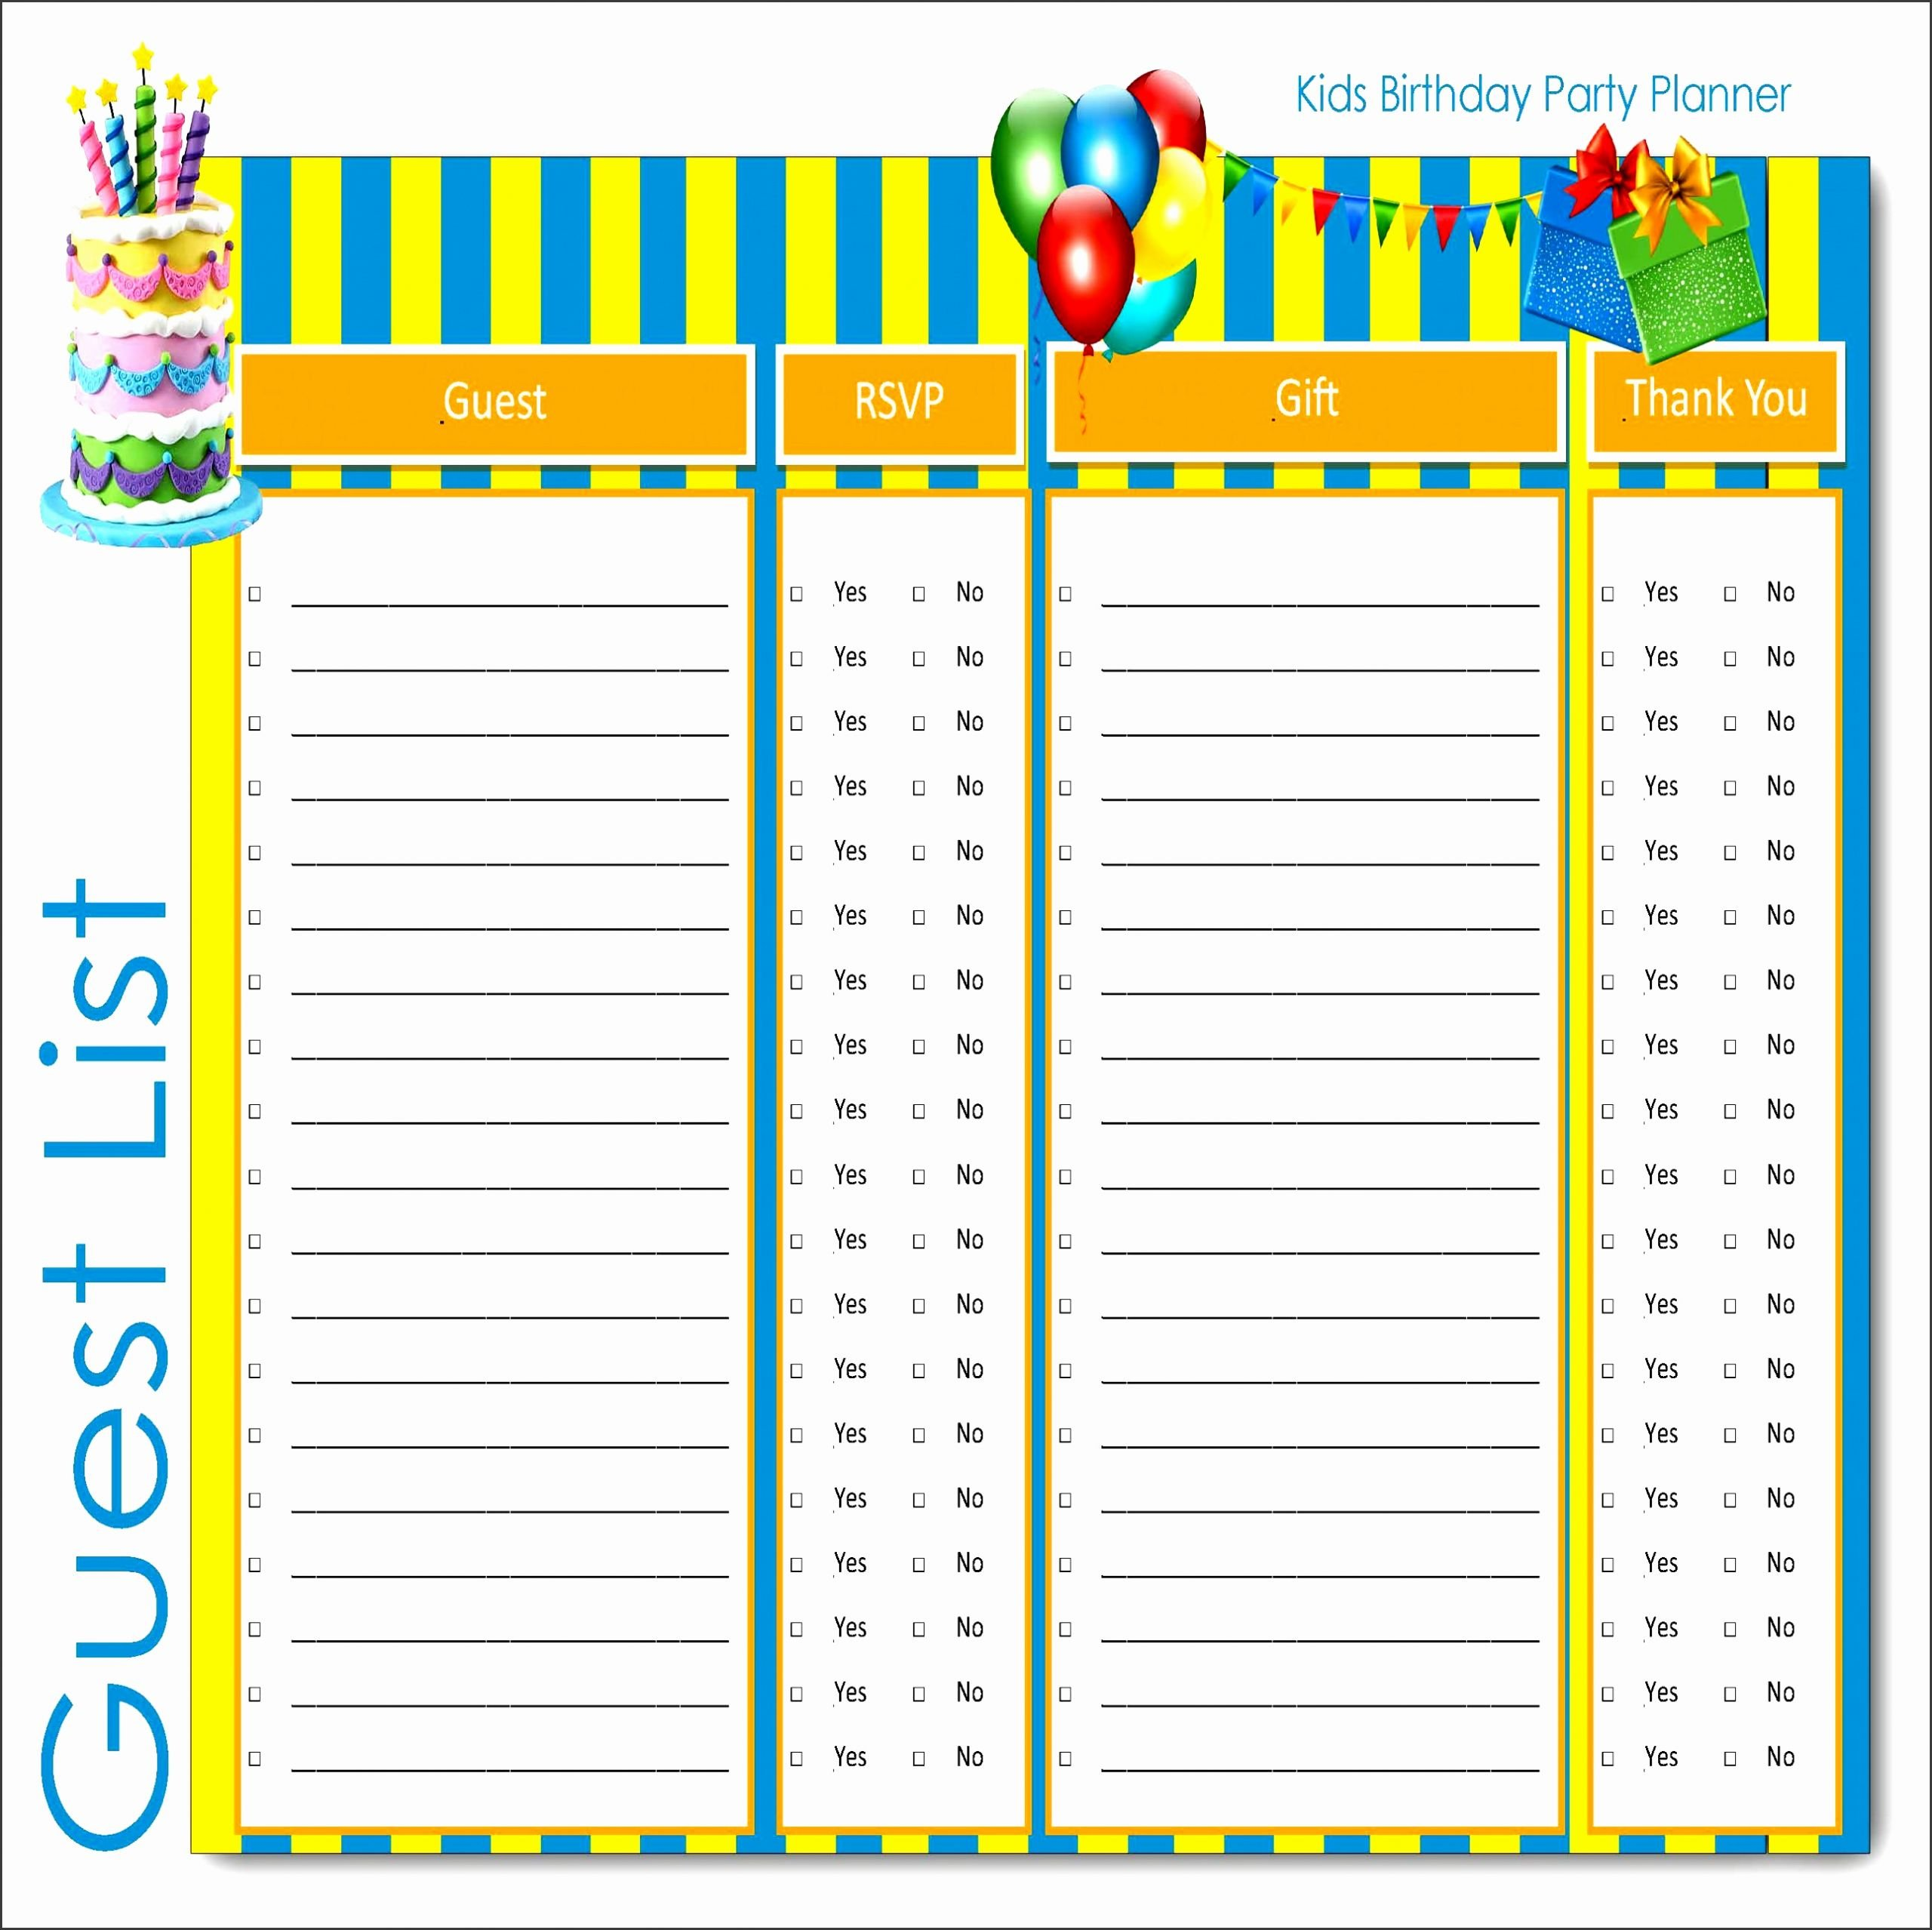 Birthday Party Guest List Template Fresh 4 How to Make Party Guest List In Ms Word